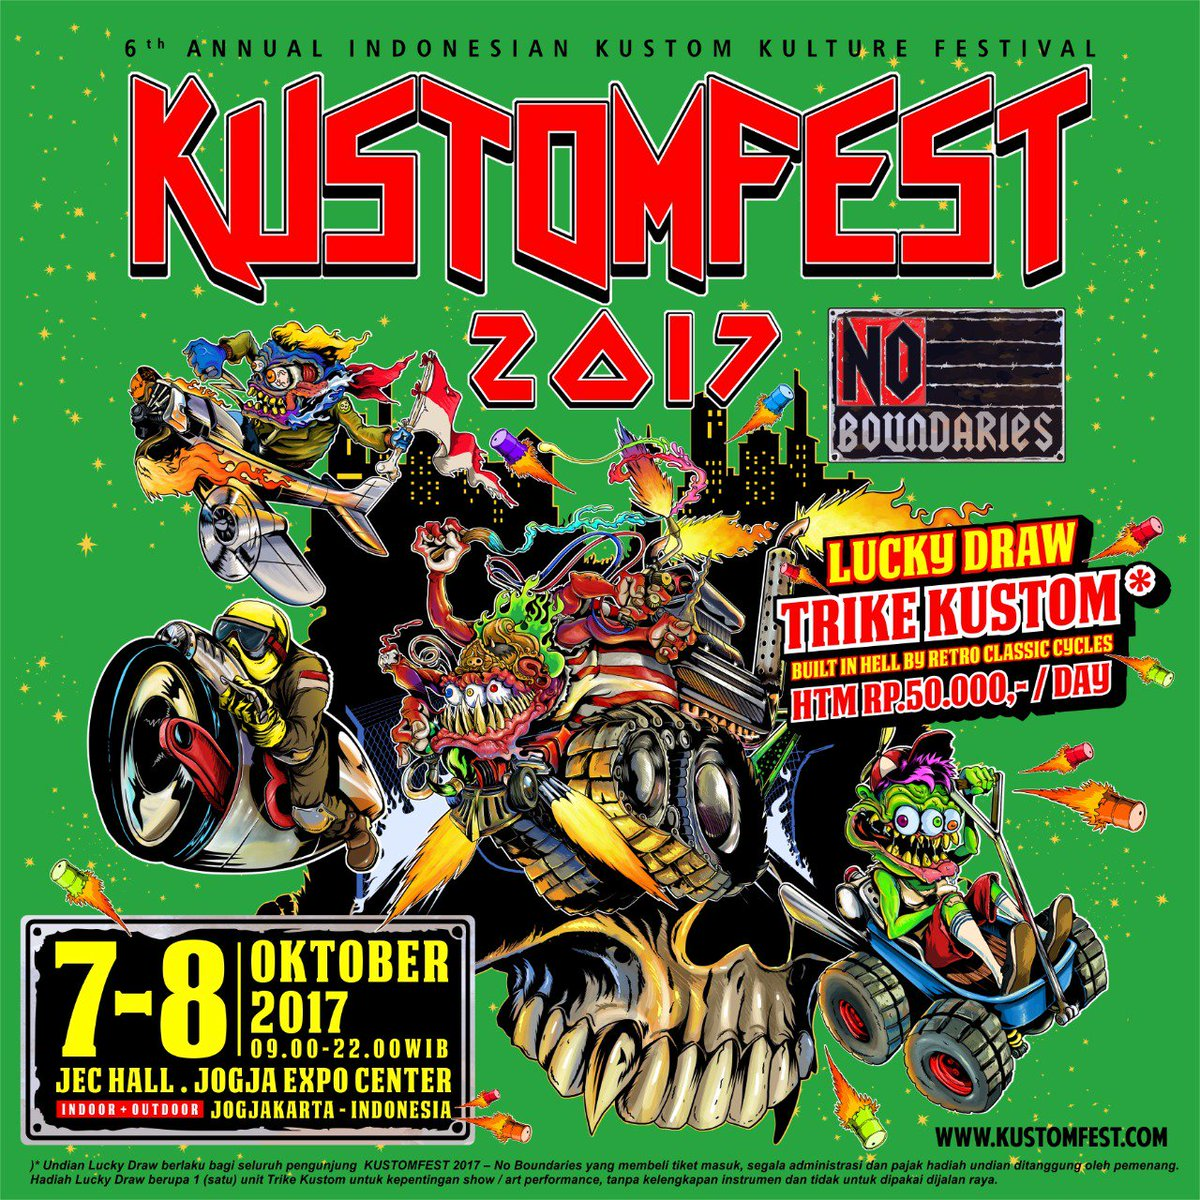 Jogja Kustomfest 2017 - kotajogja.com Images may be subject to copyright. Learn More Related images